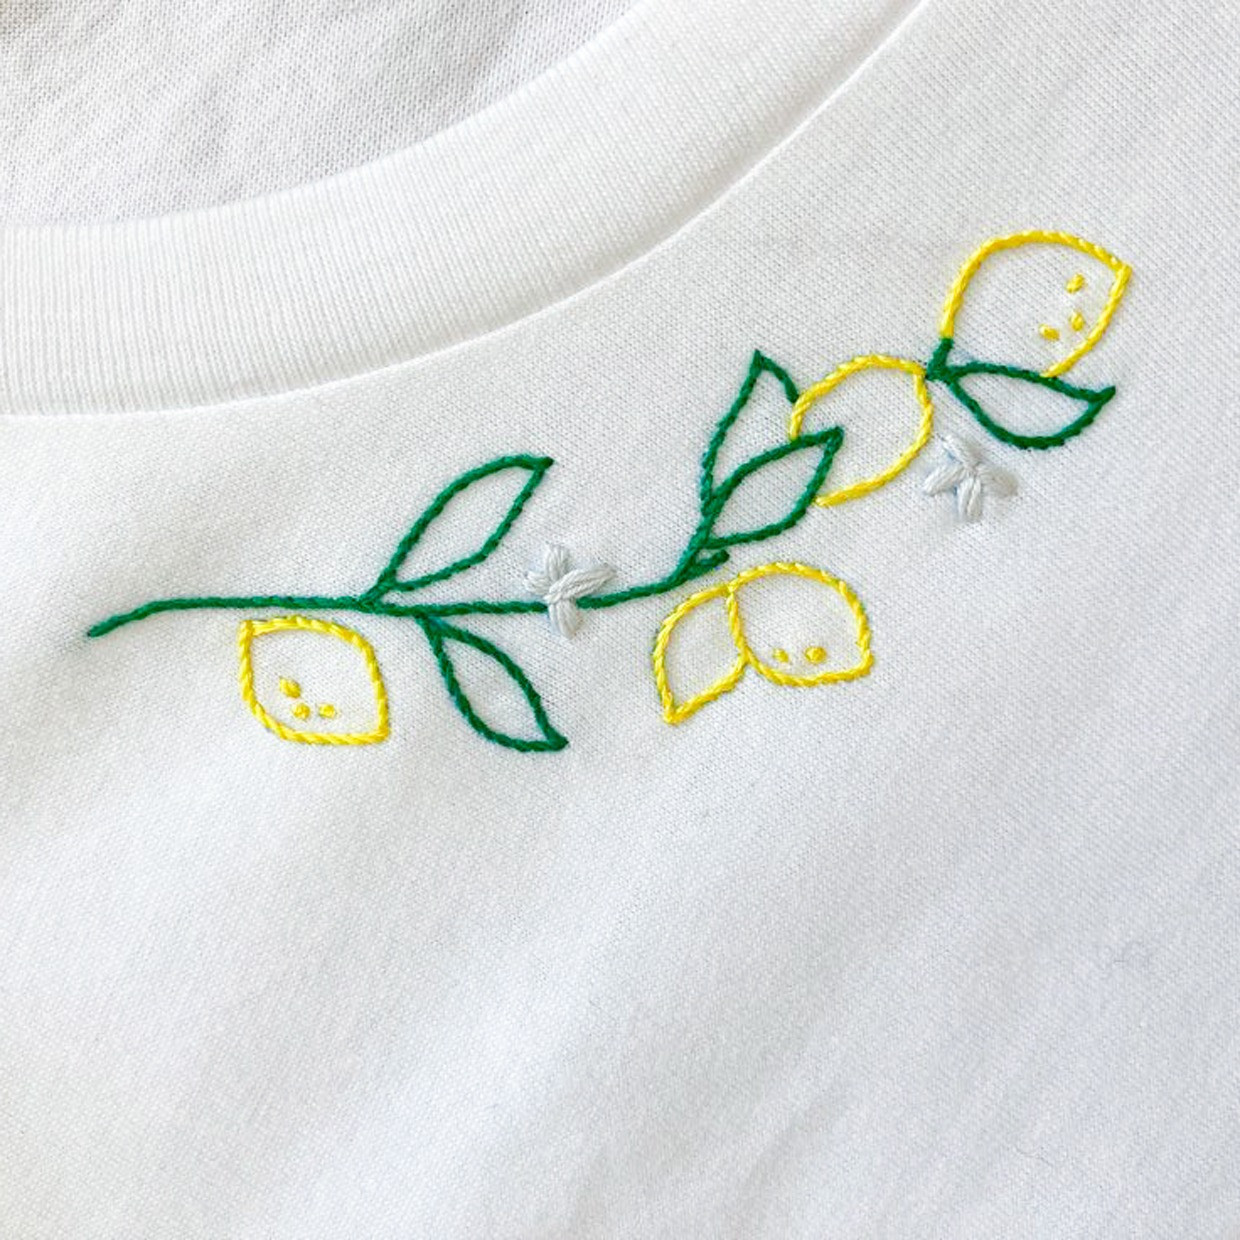 The LIMONE ultimate tee